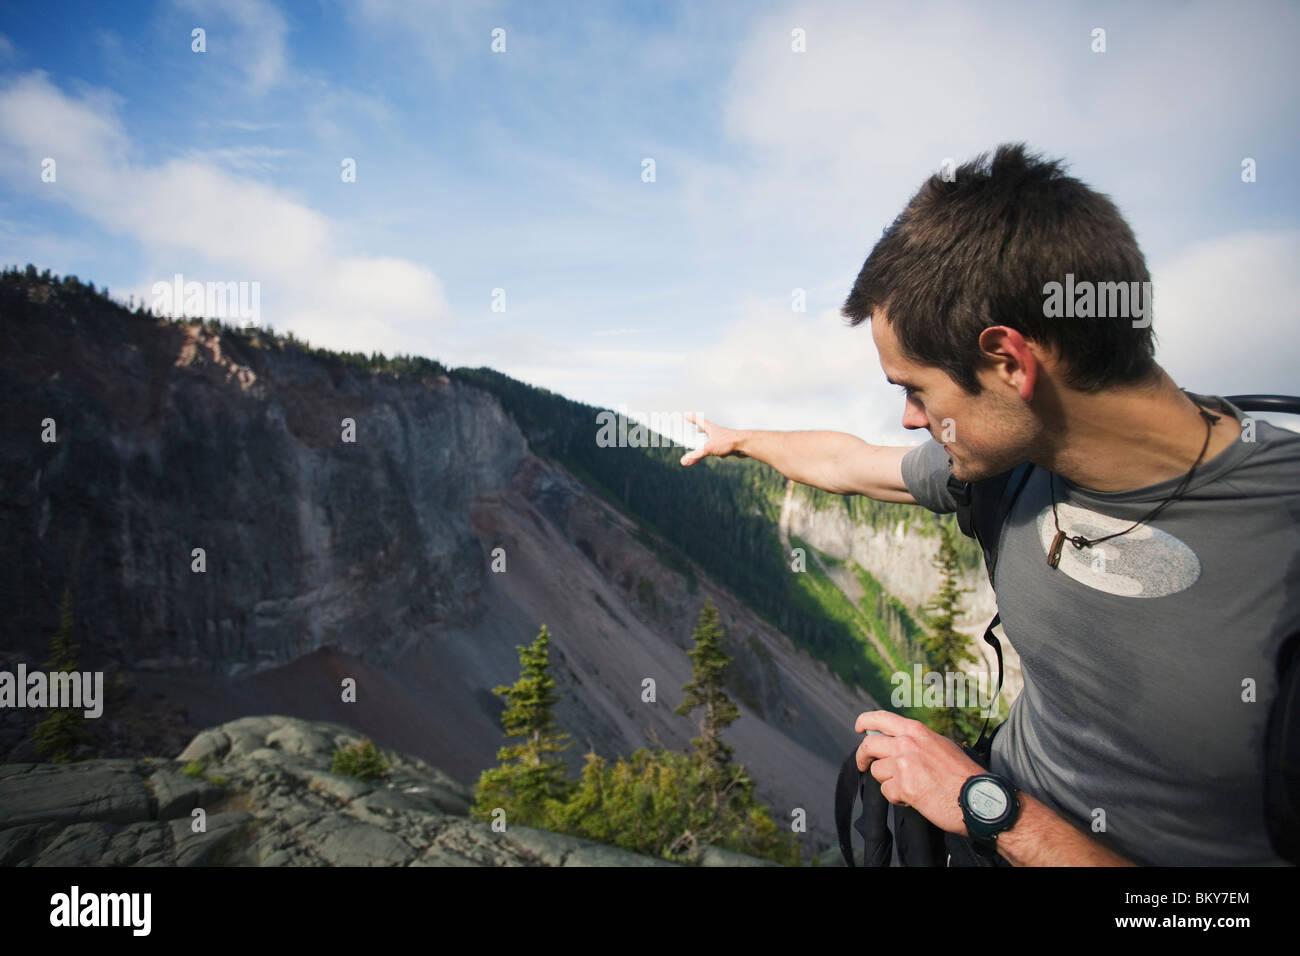 A man explains the landslide hazard potential from The Barrier, an unstable volcanic cliff near Squamish, British - Stock Image